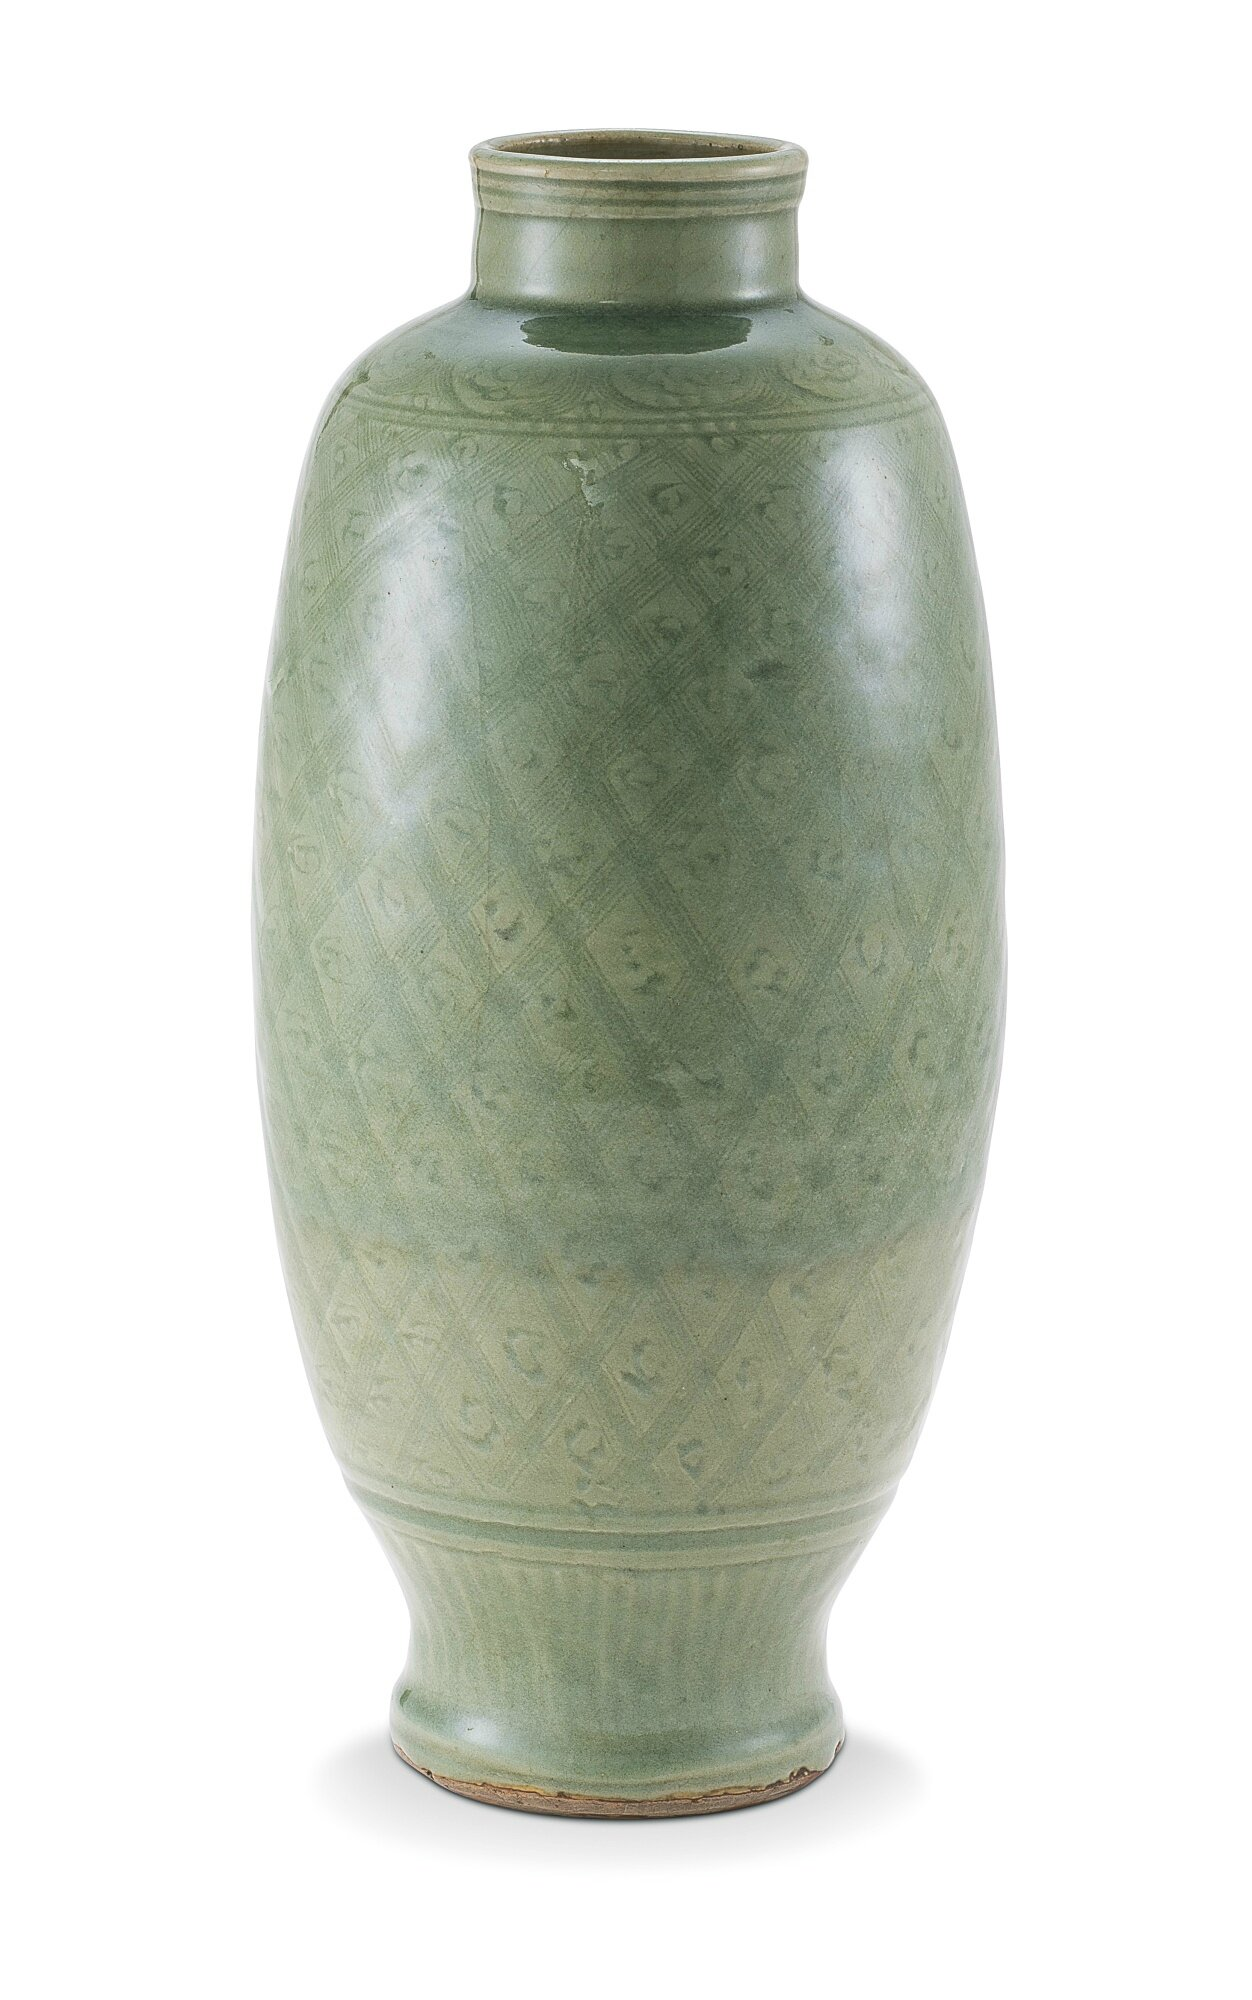 A carved Longquan celadon vase, Ming Dynasty, 17th century